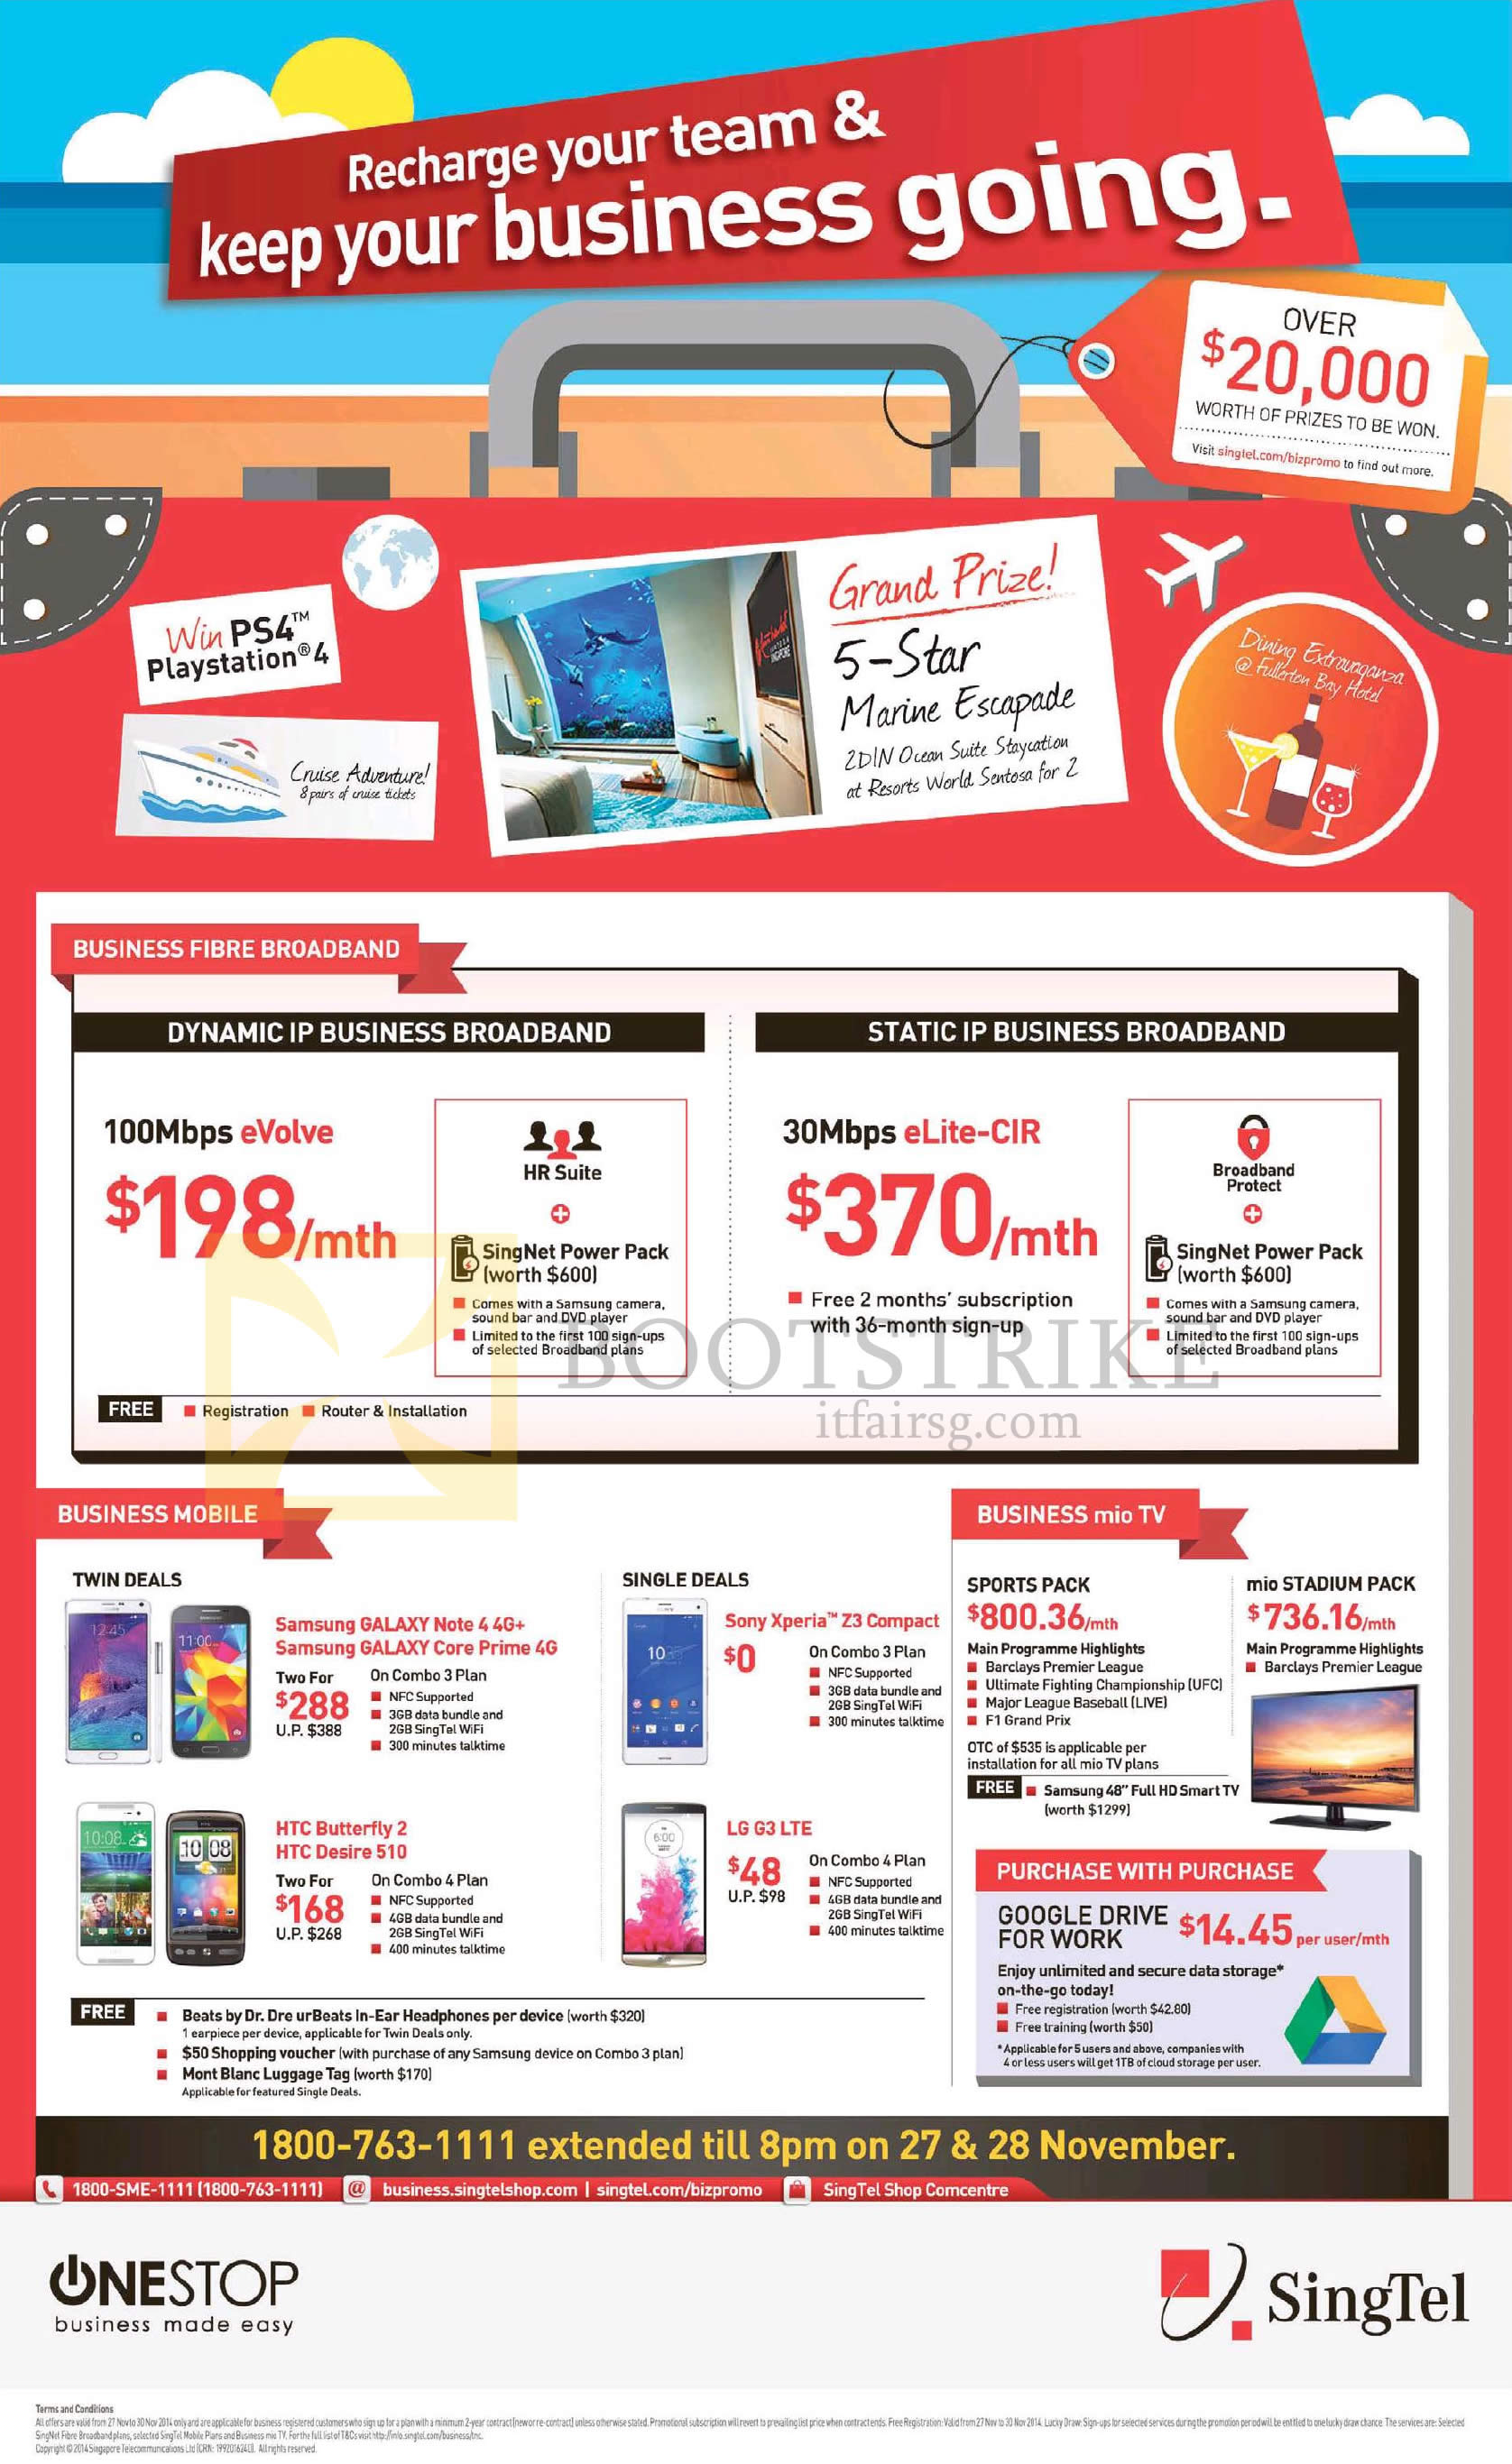 SITEX 2014 price list image brochure of Singtel Business Broadband, Mobiles, 100Mbps EVolve, 30Mbps ELite-CIR, Samsung Galaxy Note 4, Core Prime, HTC Butterfly 2, Desire 610, Sony Xperia Z3 Compact, LG G3, TV Sports Pack